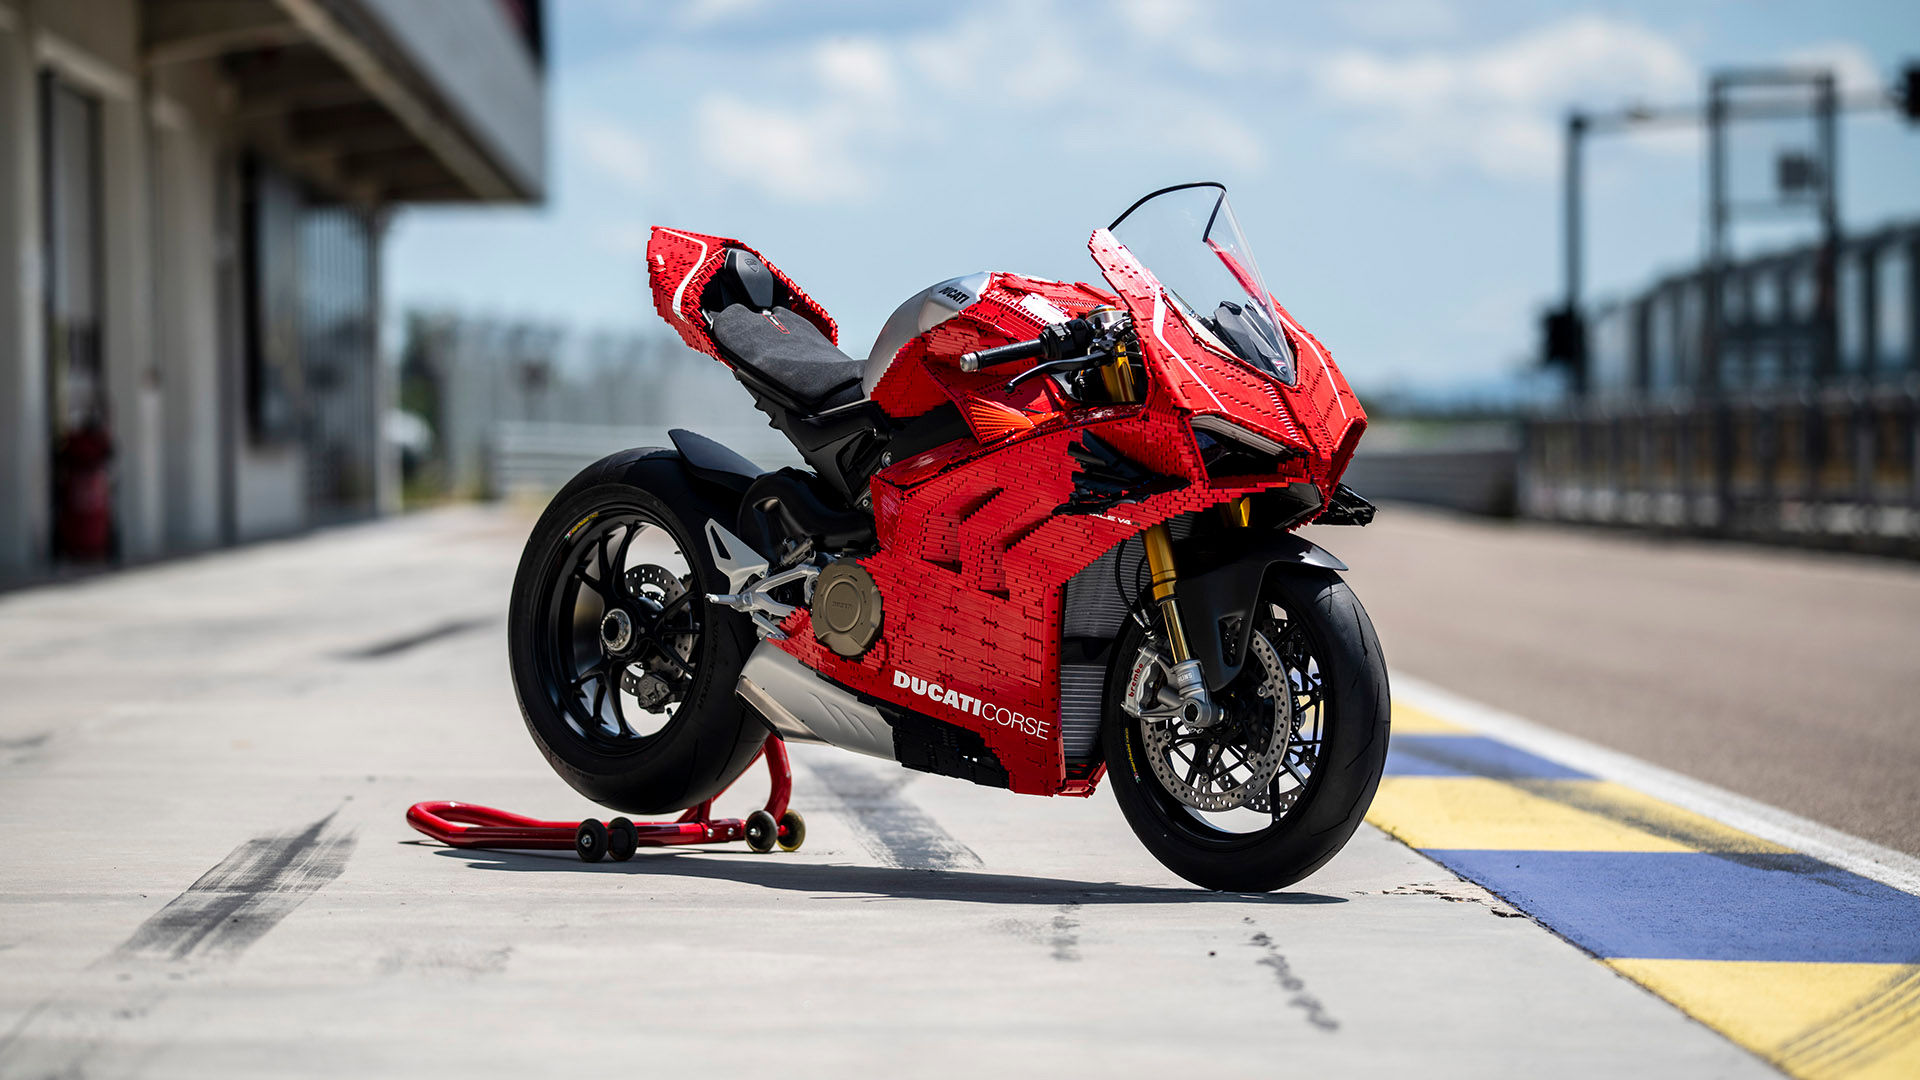 Ducati Panigale V4 R with covers in Lego